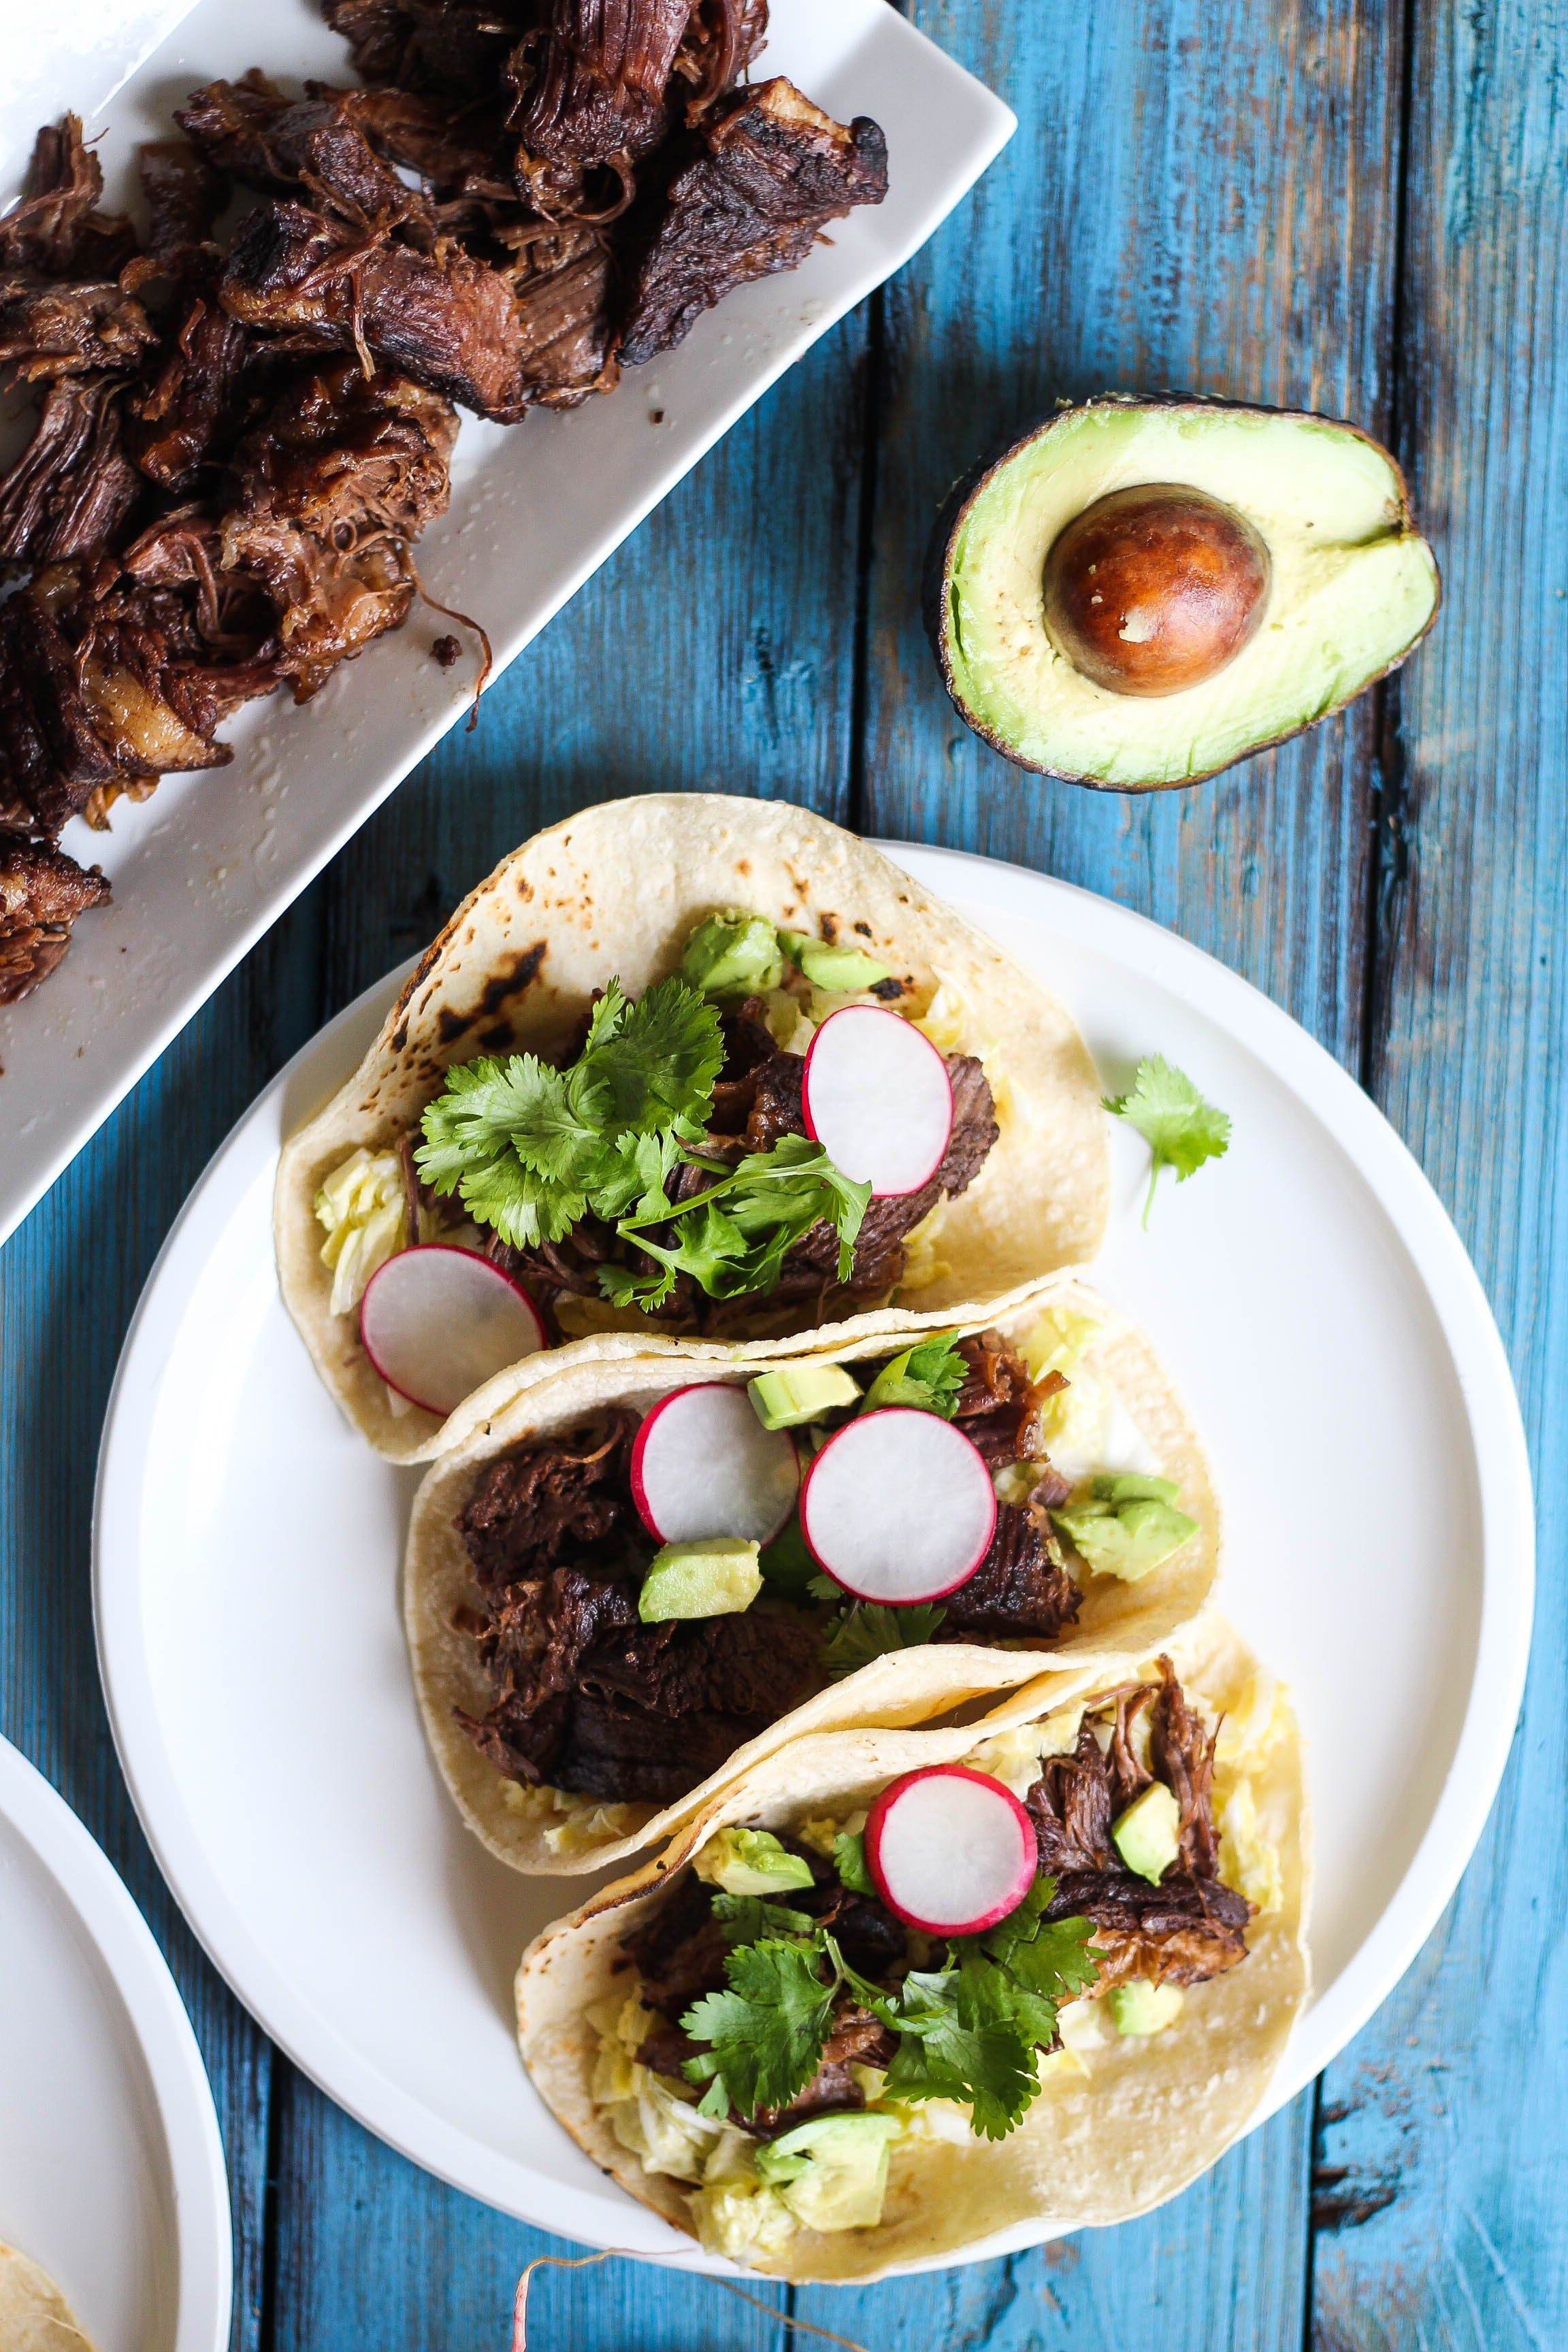 Slow-cooked beef short ribs in an Asian-inspired marinade are a fun twist on a Mexican classic. Enjoy a unique marriage of textures in these simple, wholesome tacos.